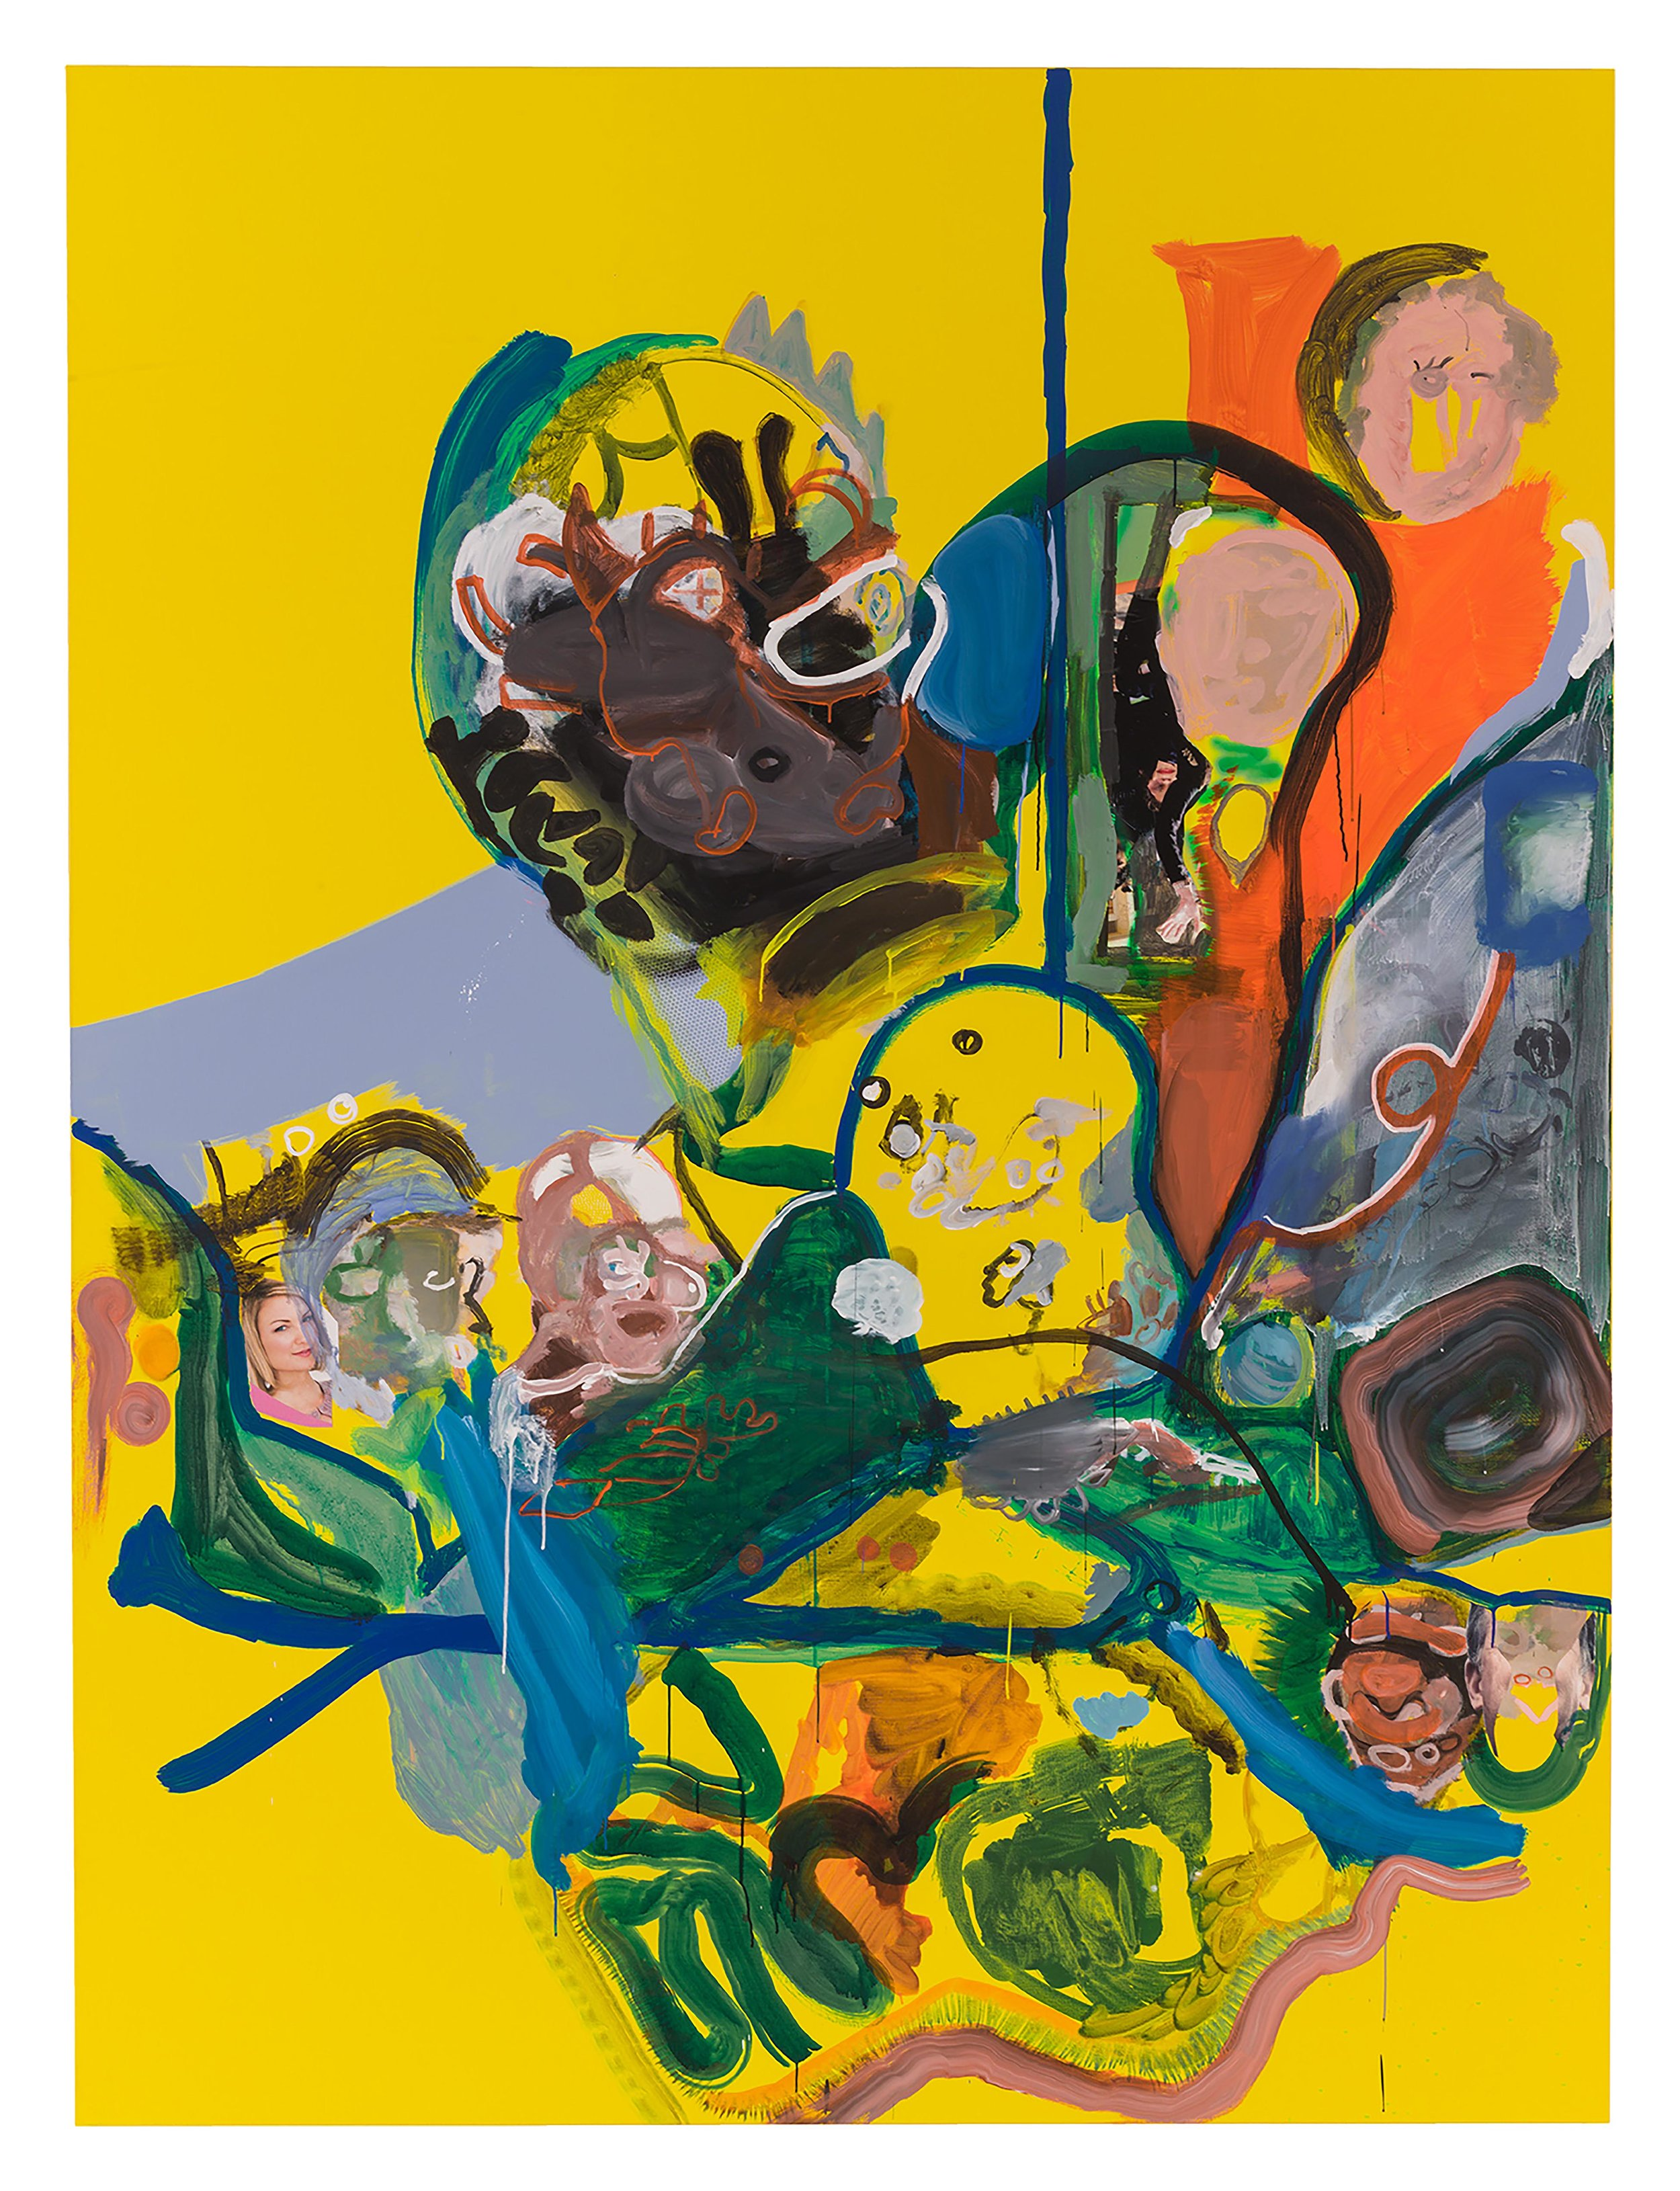 Drew Beattie  Fruit in the Morning  2010 acrylic and collage on canvas 120 x 90 inches